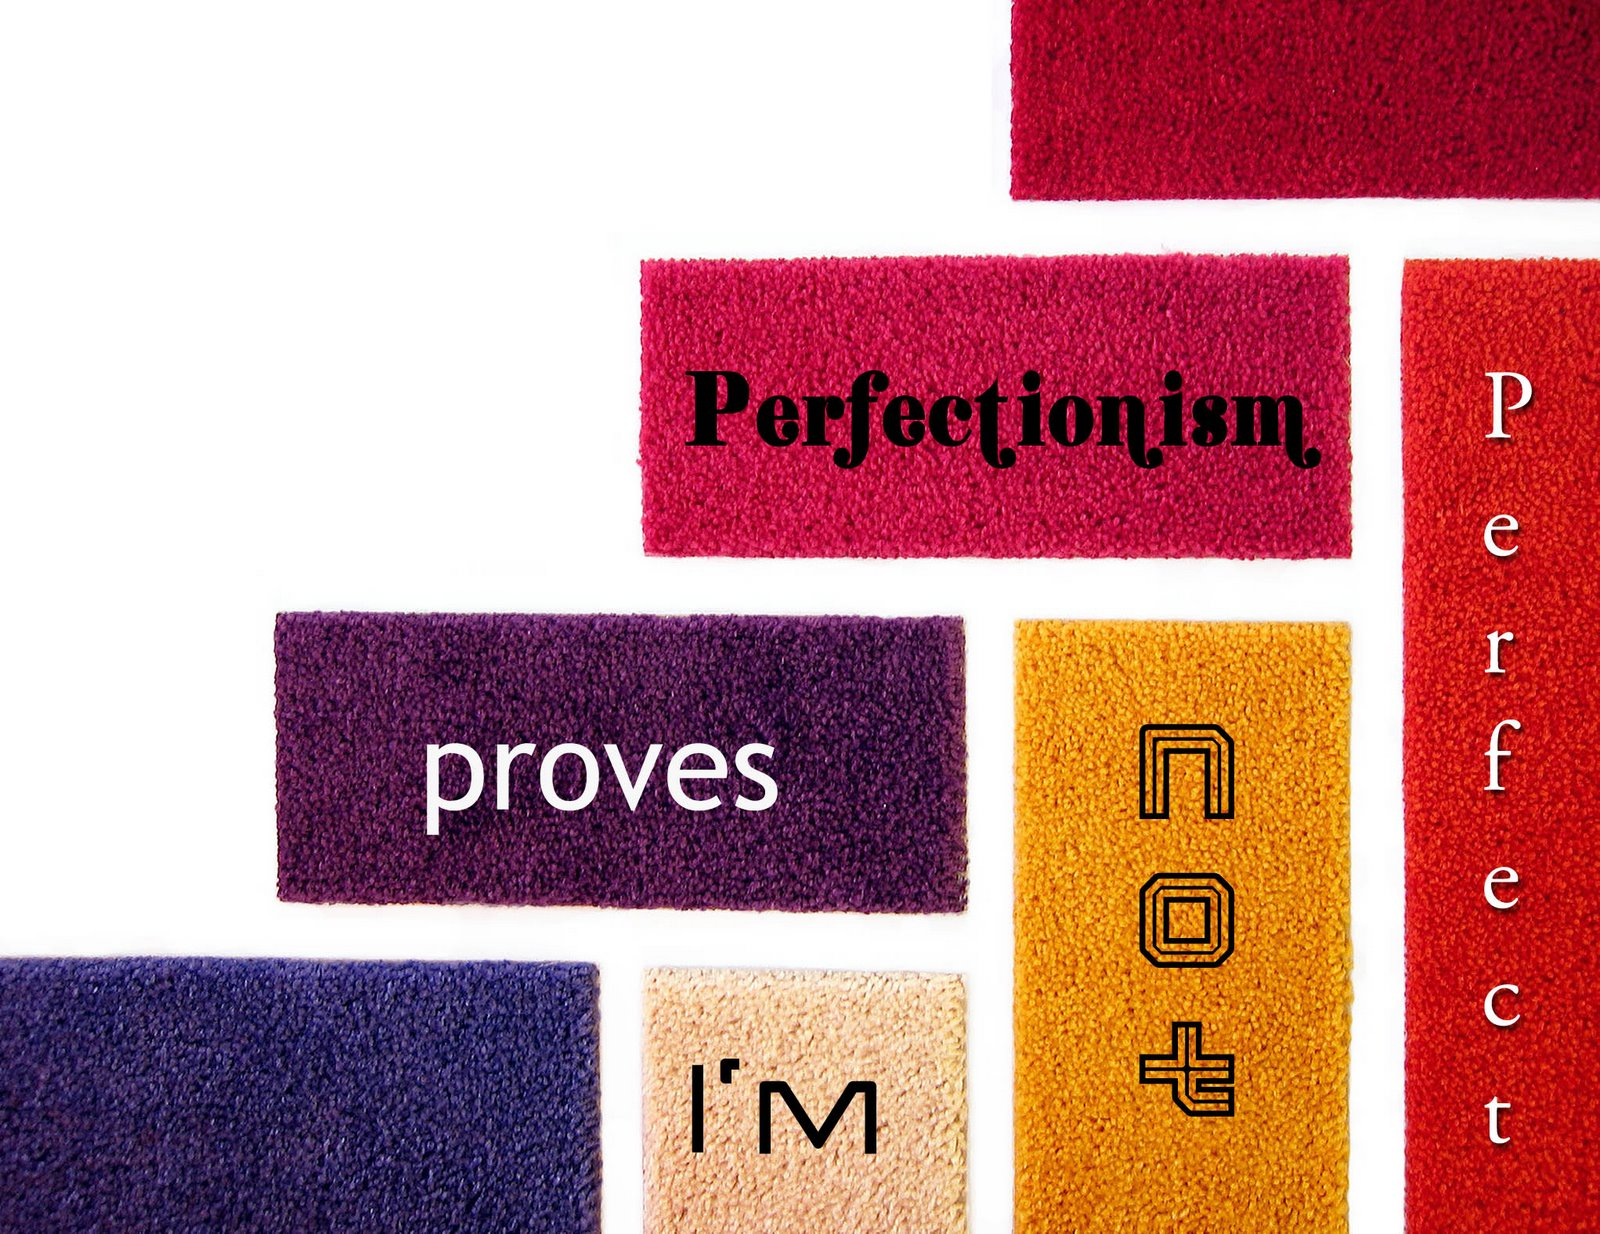 perfectionism Compared to prior generations, today's students are harder on themselves and report higher levels of social pressure to be perfect.